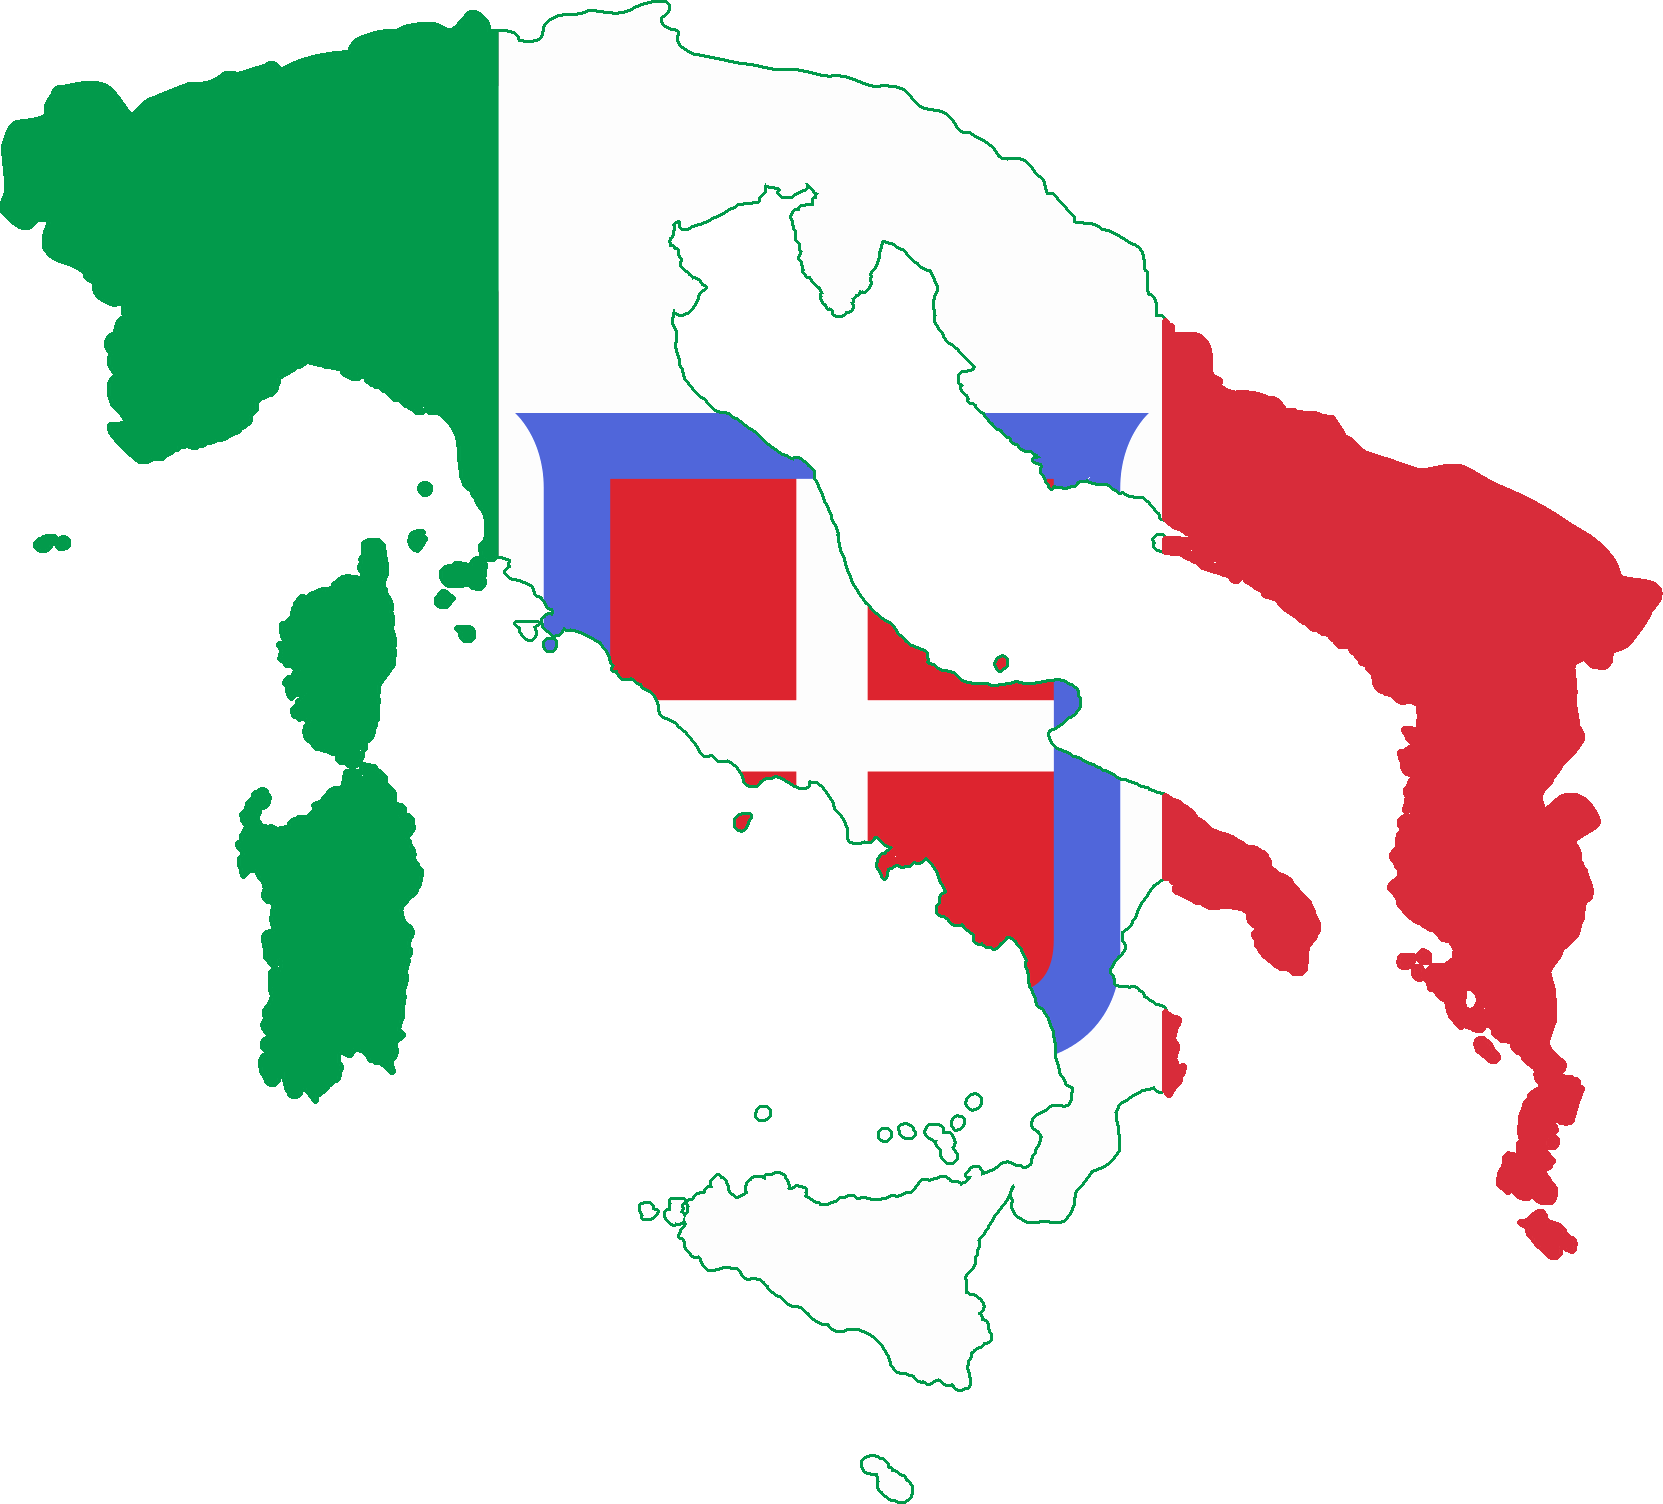 austria political map with File Flag Map Of Greater Italy  Kingdom Of Italy on Get Know Austrian Wine Map furthermore 19140628 together with Oceania likewise Sudetenland 580752892 as well herlands Map.